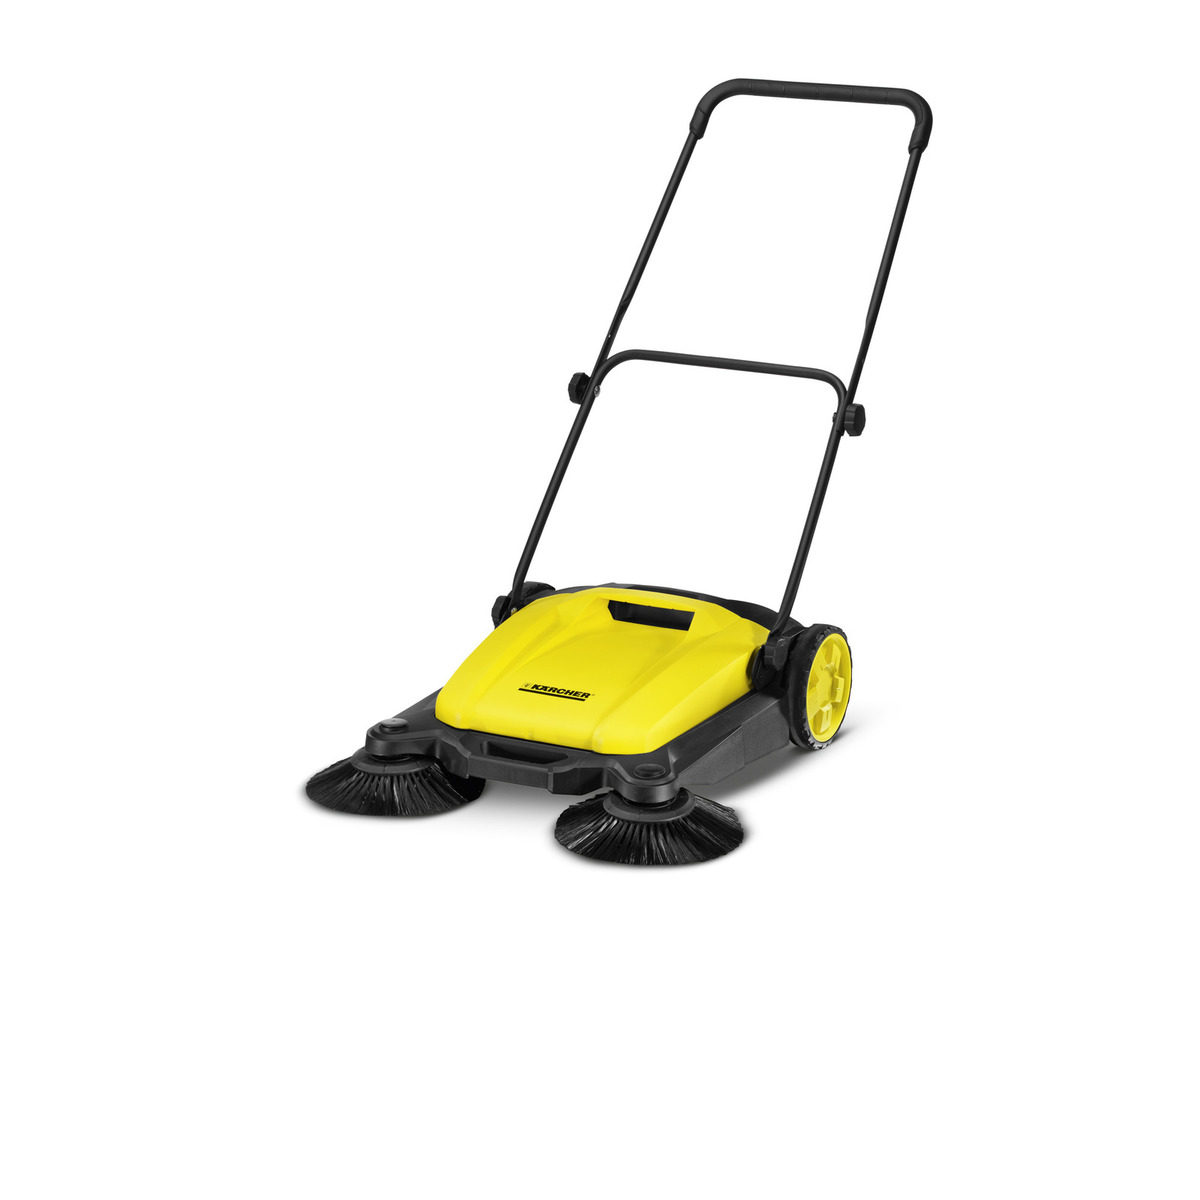 Karcher Industrial Sweepers